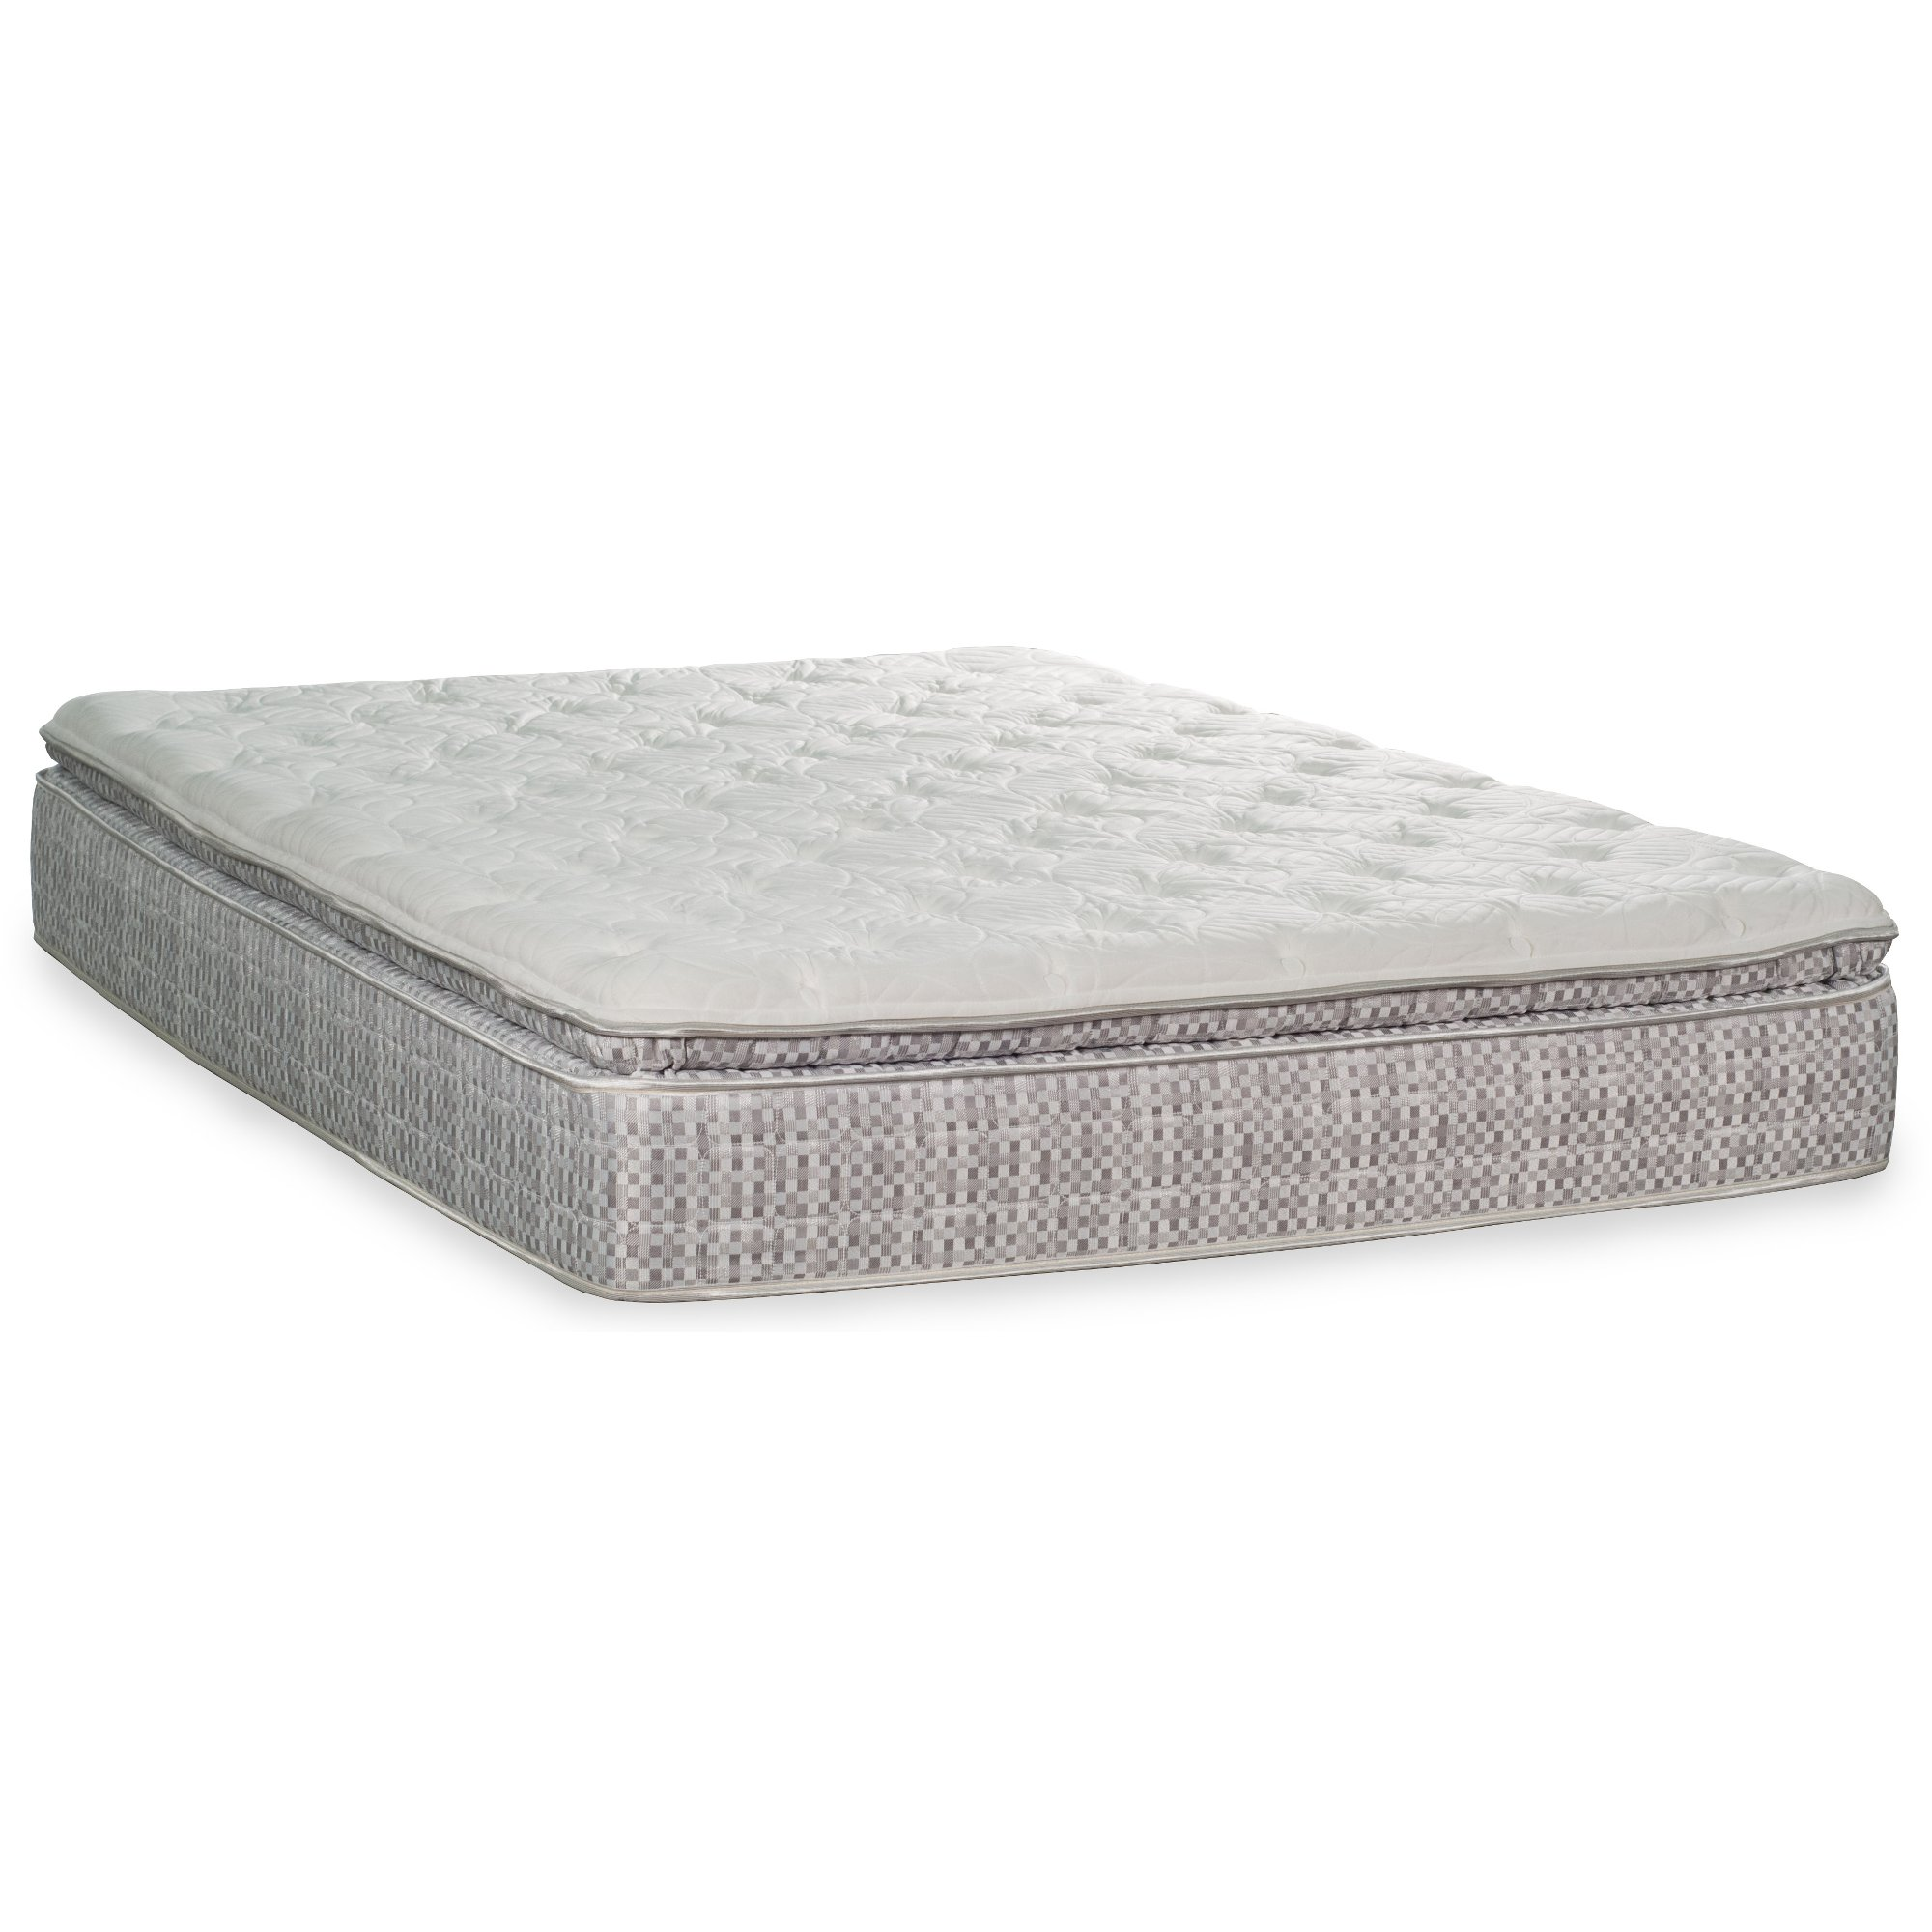 adjustable sale frame foundation with foam bedding queen base split cal of price king and size power lowest electric full mattress bed beds